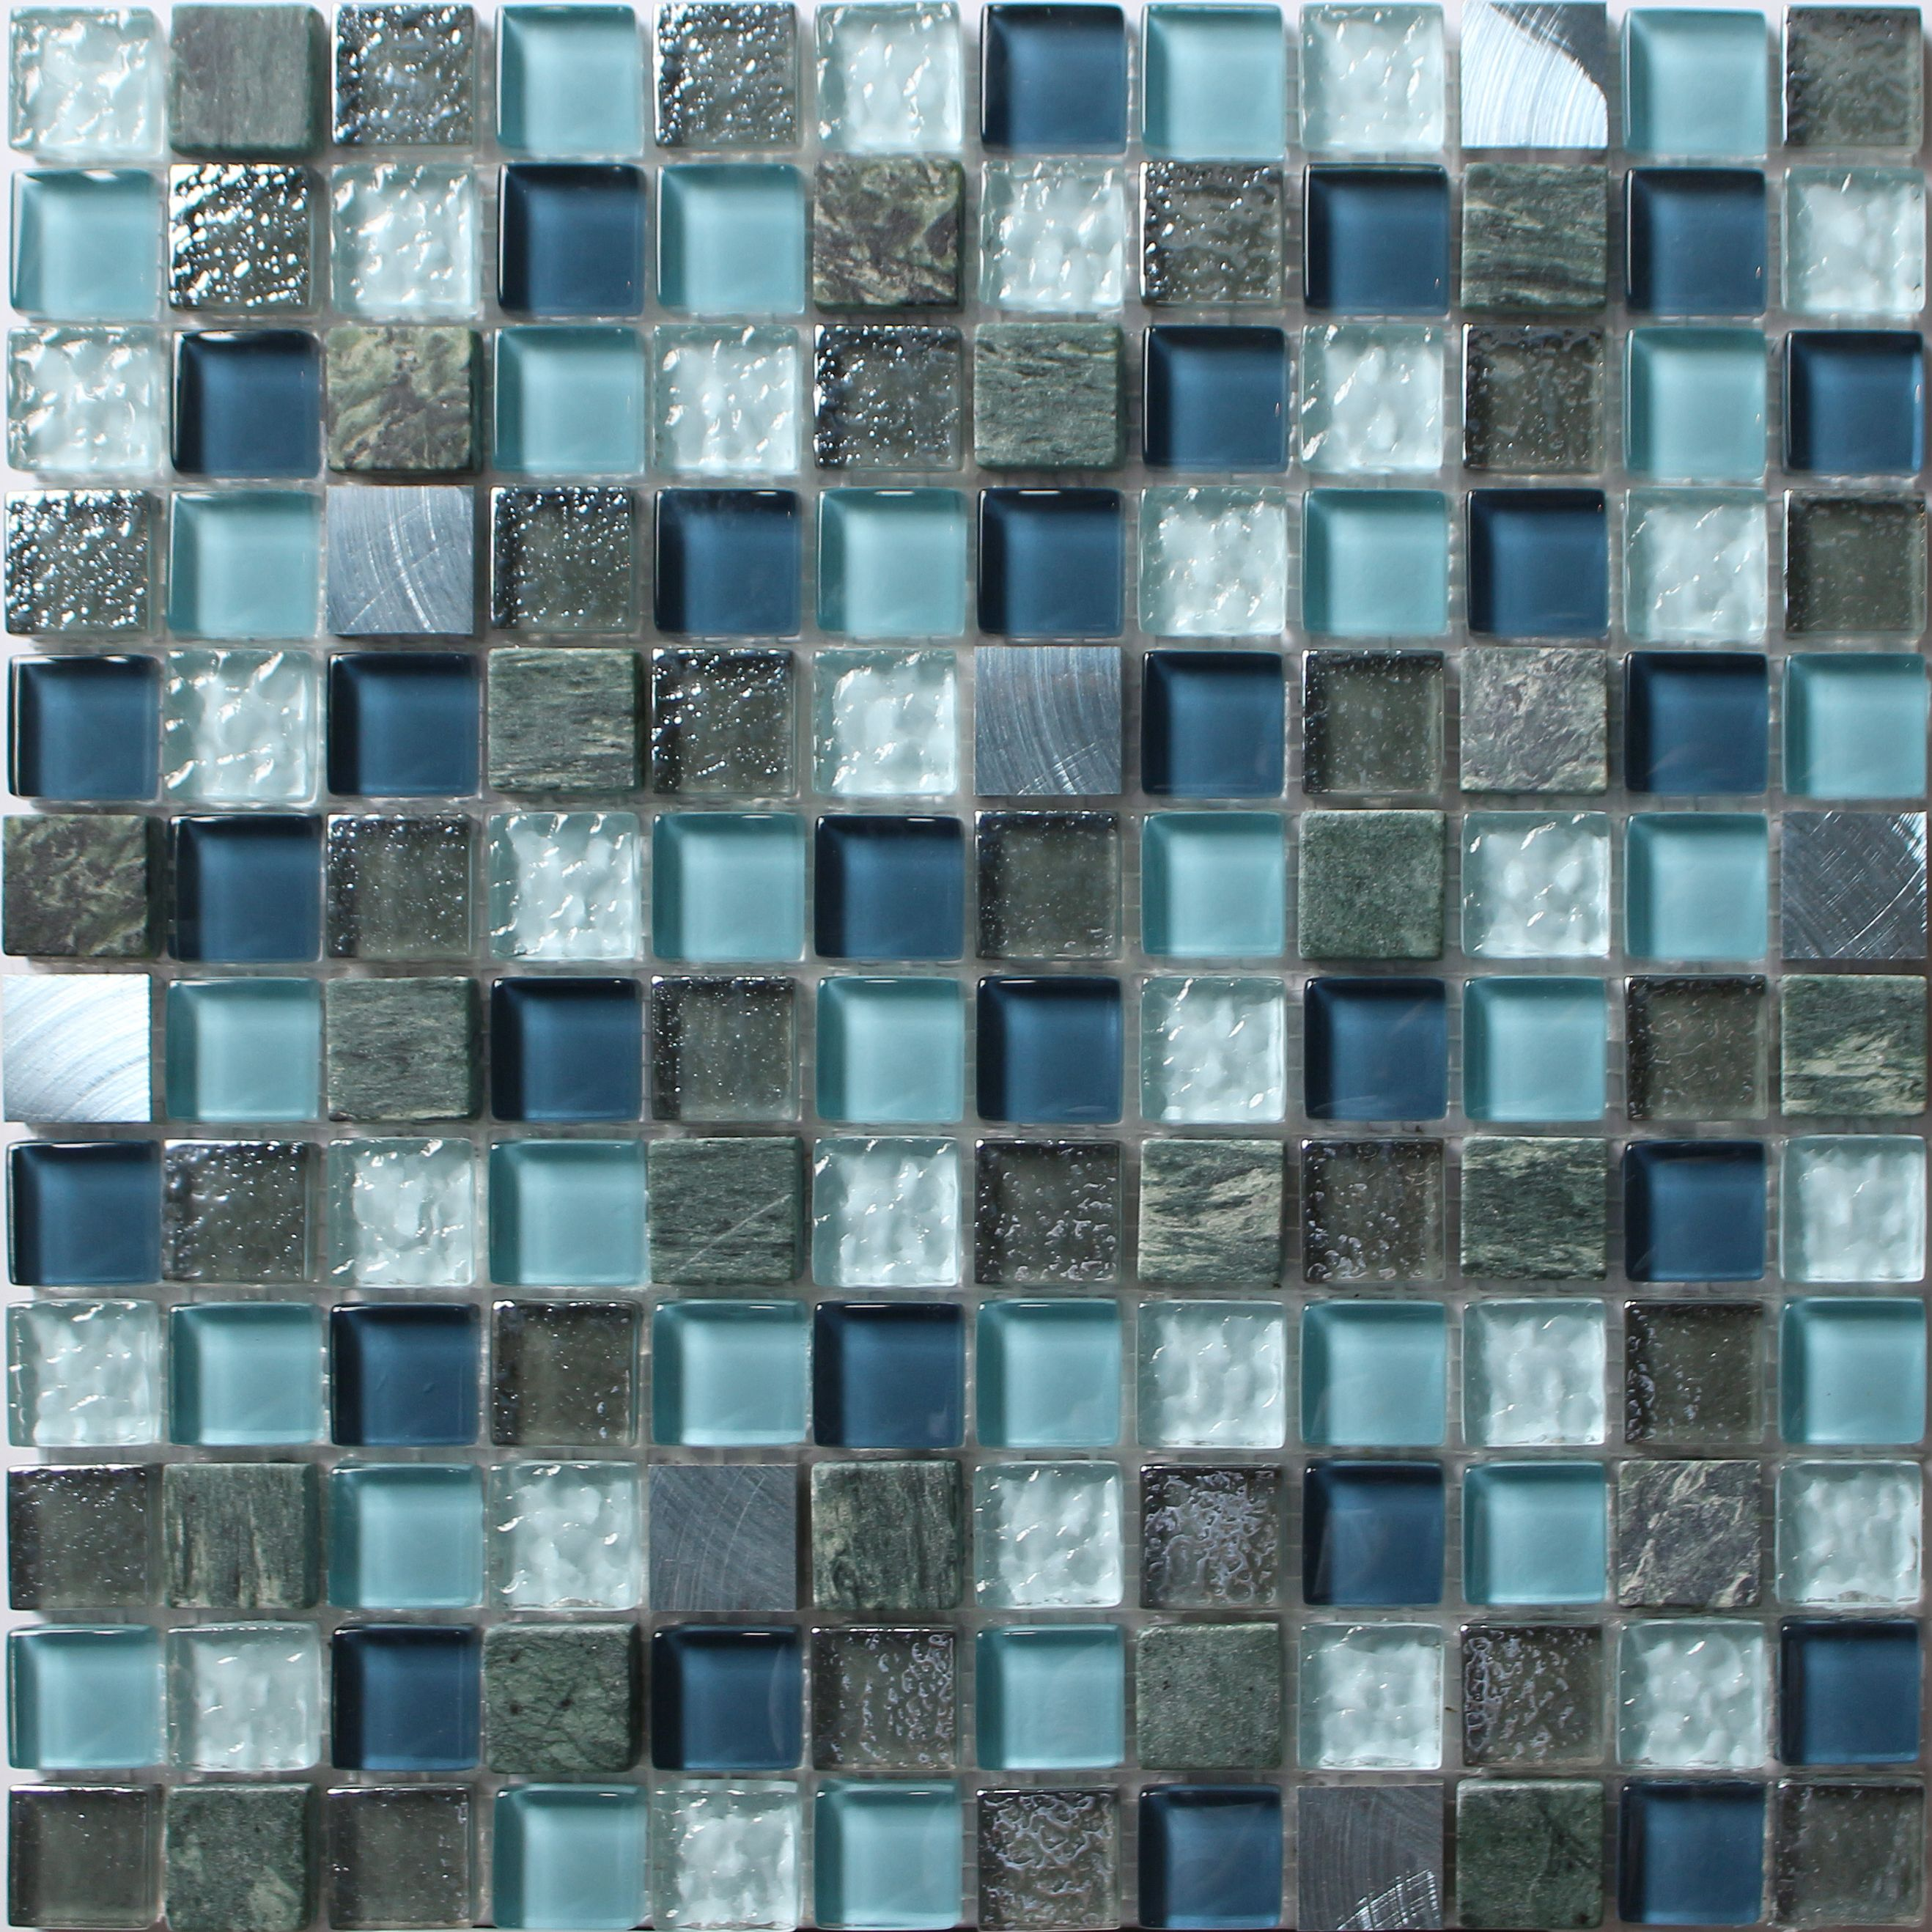 Brown Mosaic Glass Stone Wall Tile L 300mm W 308mm: Brixton Blue Stone Effect Glass & Marble Mosaic Tile, (L